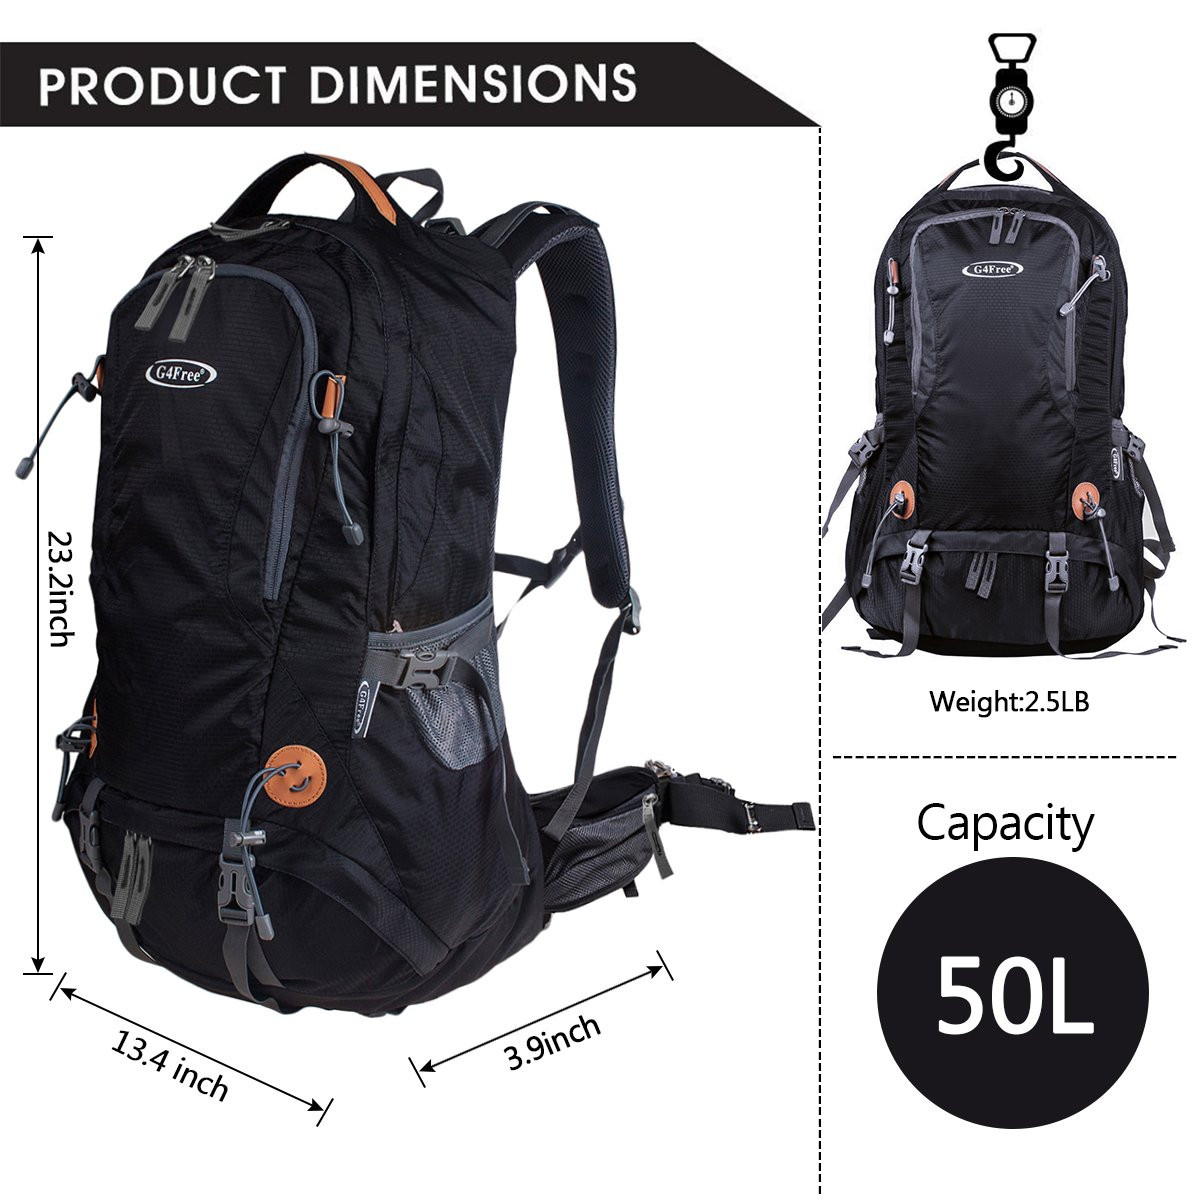 47b6cb015f G4Free 50L Outdoor Backpack Camping Climbing Hiking Backpack for Backpacker  Unisex Bag with Rain Cover(Black) - G4Free TN0152A   Internal Frame  Backpacks ...